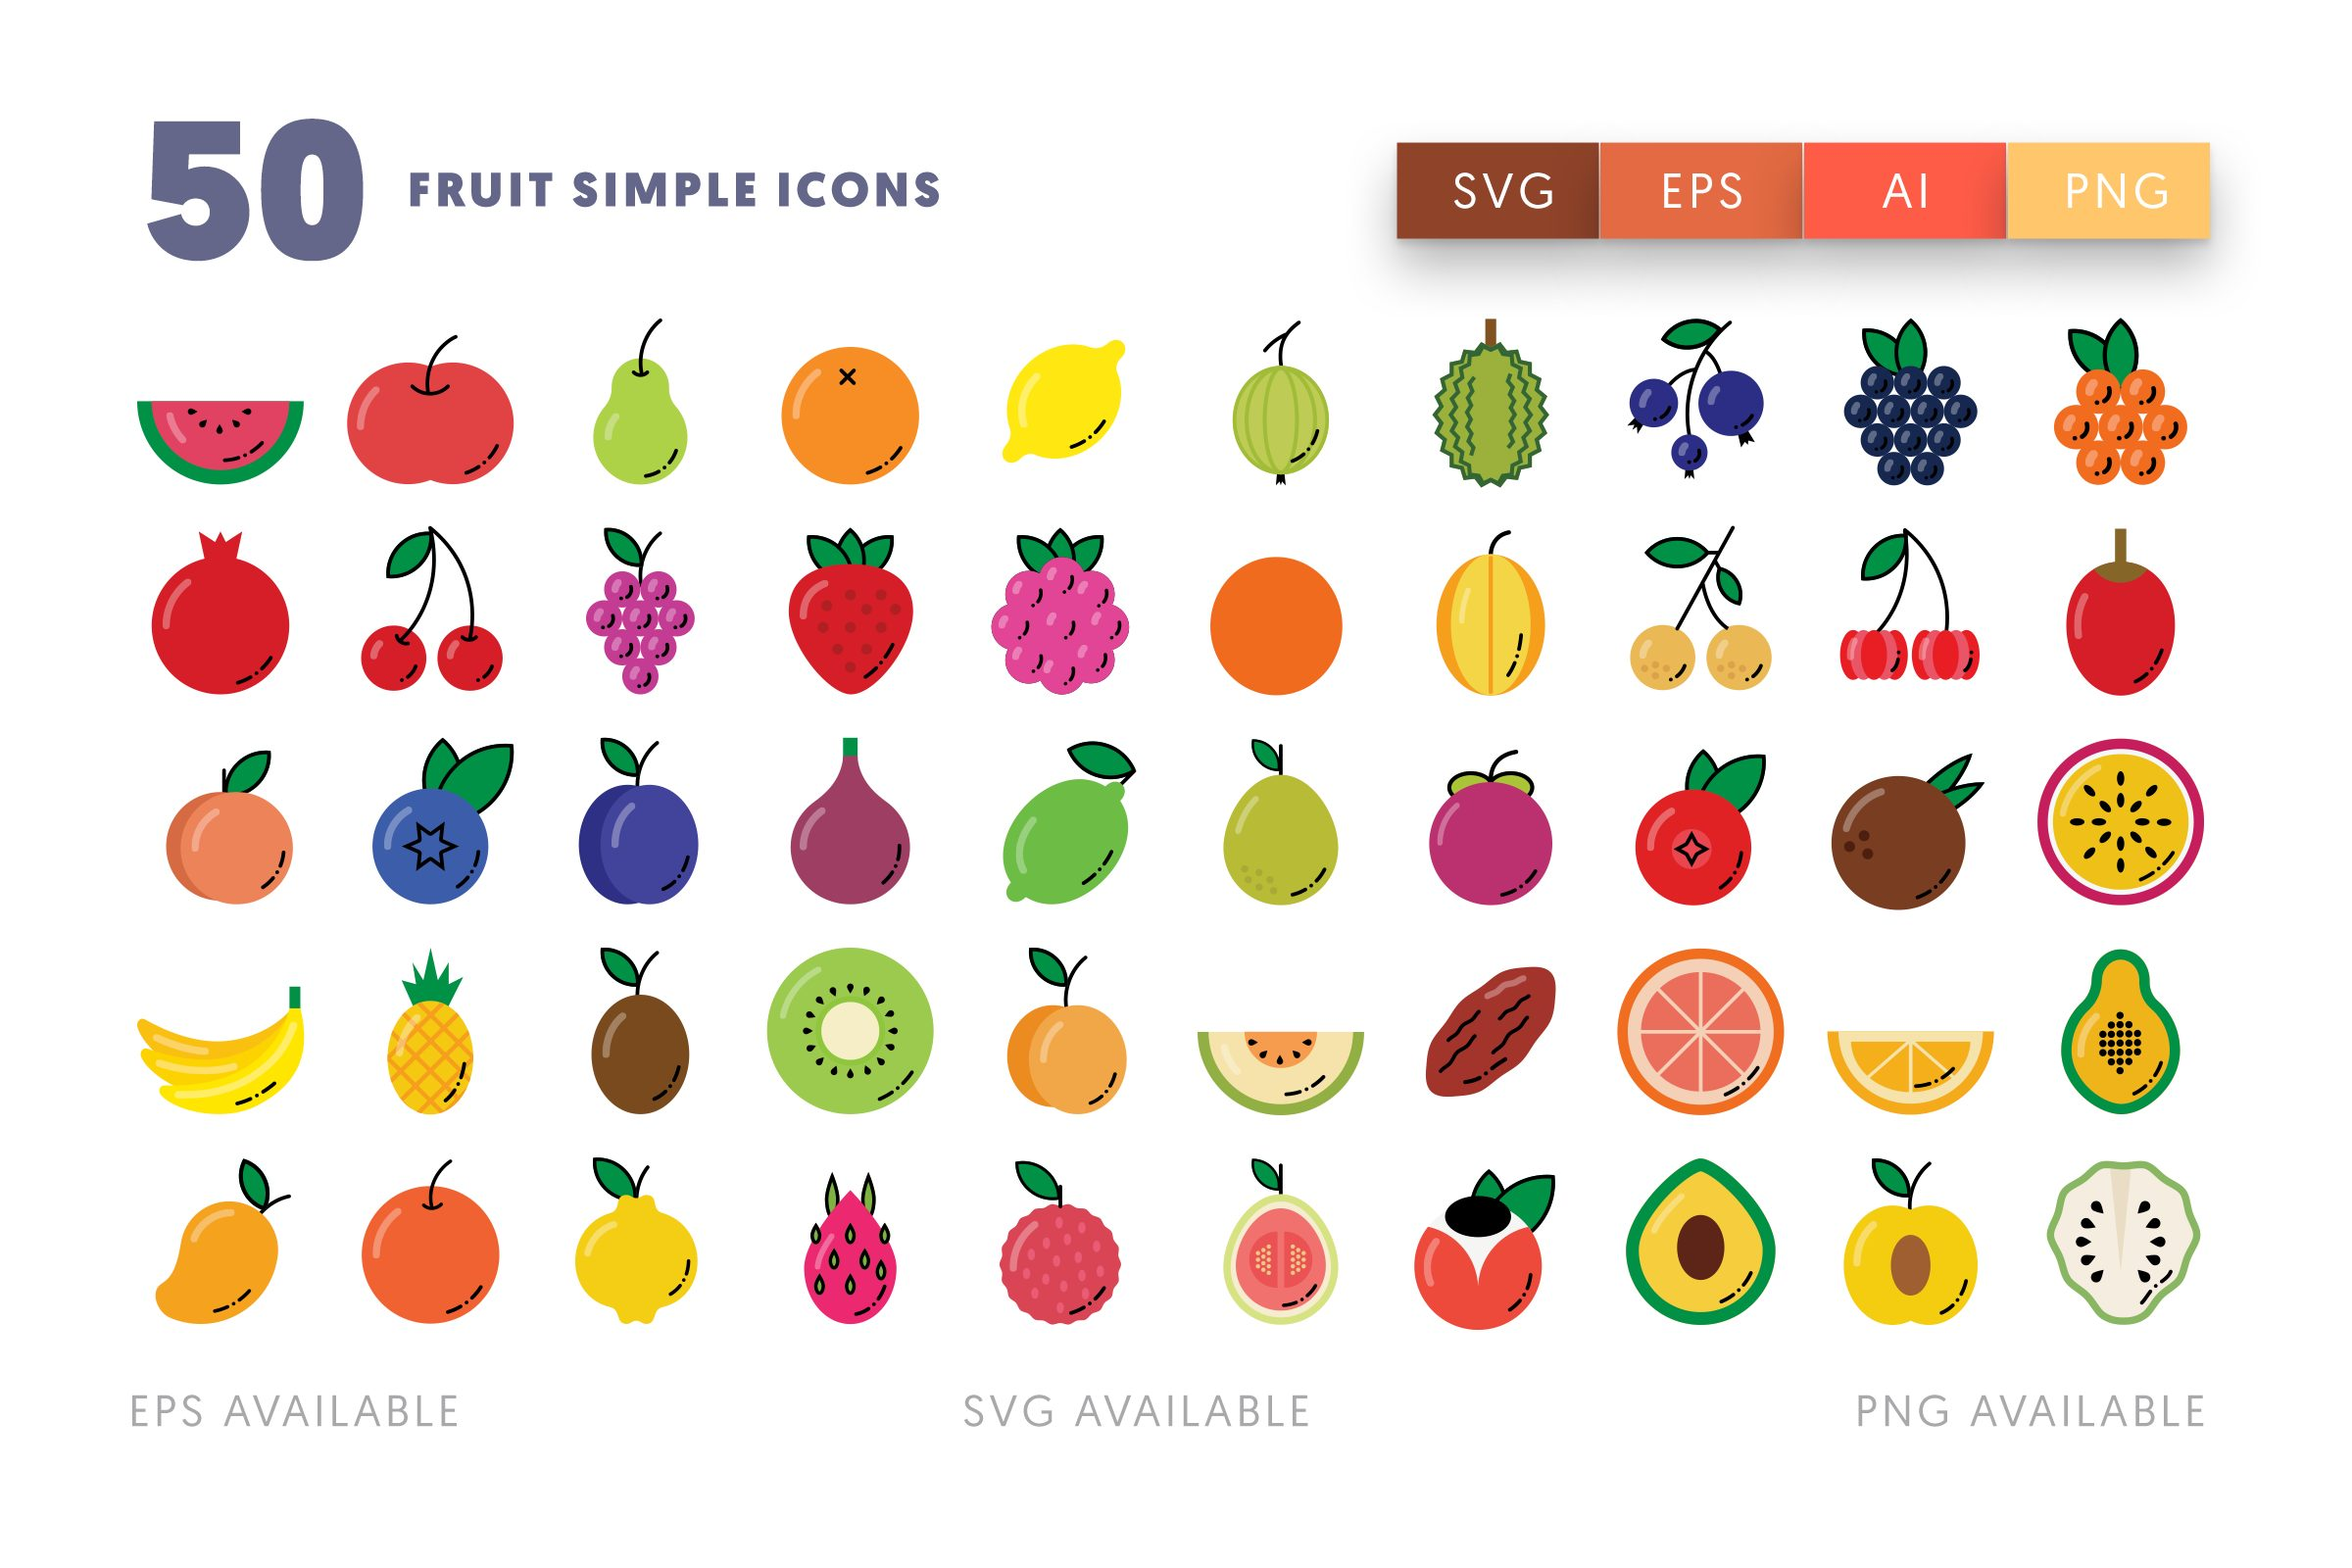 Fruit Simple icons png/svg/eps